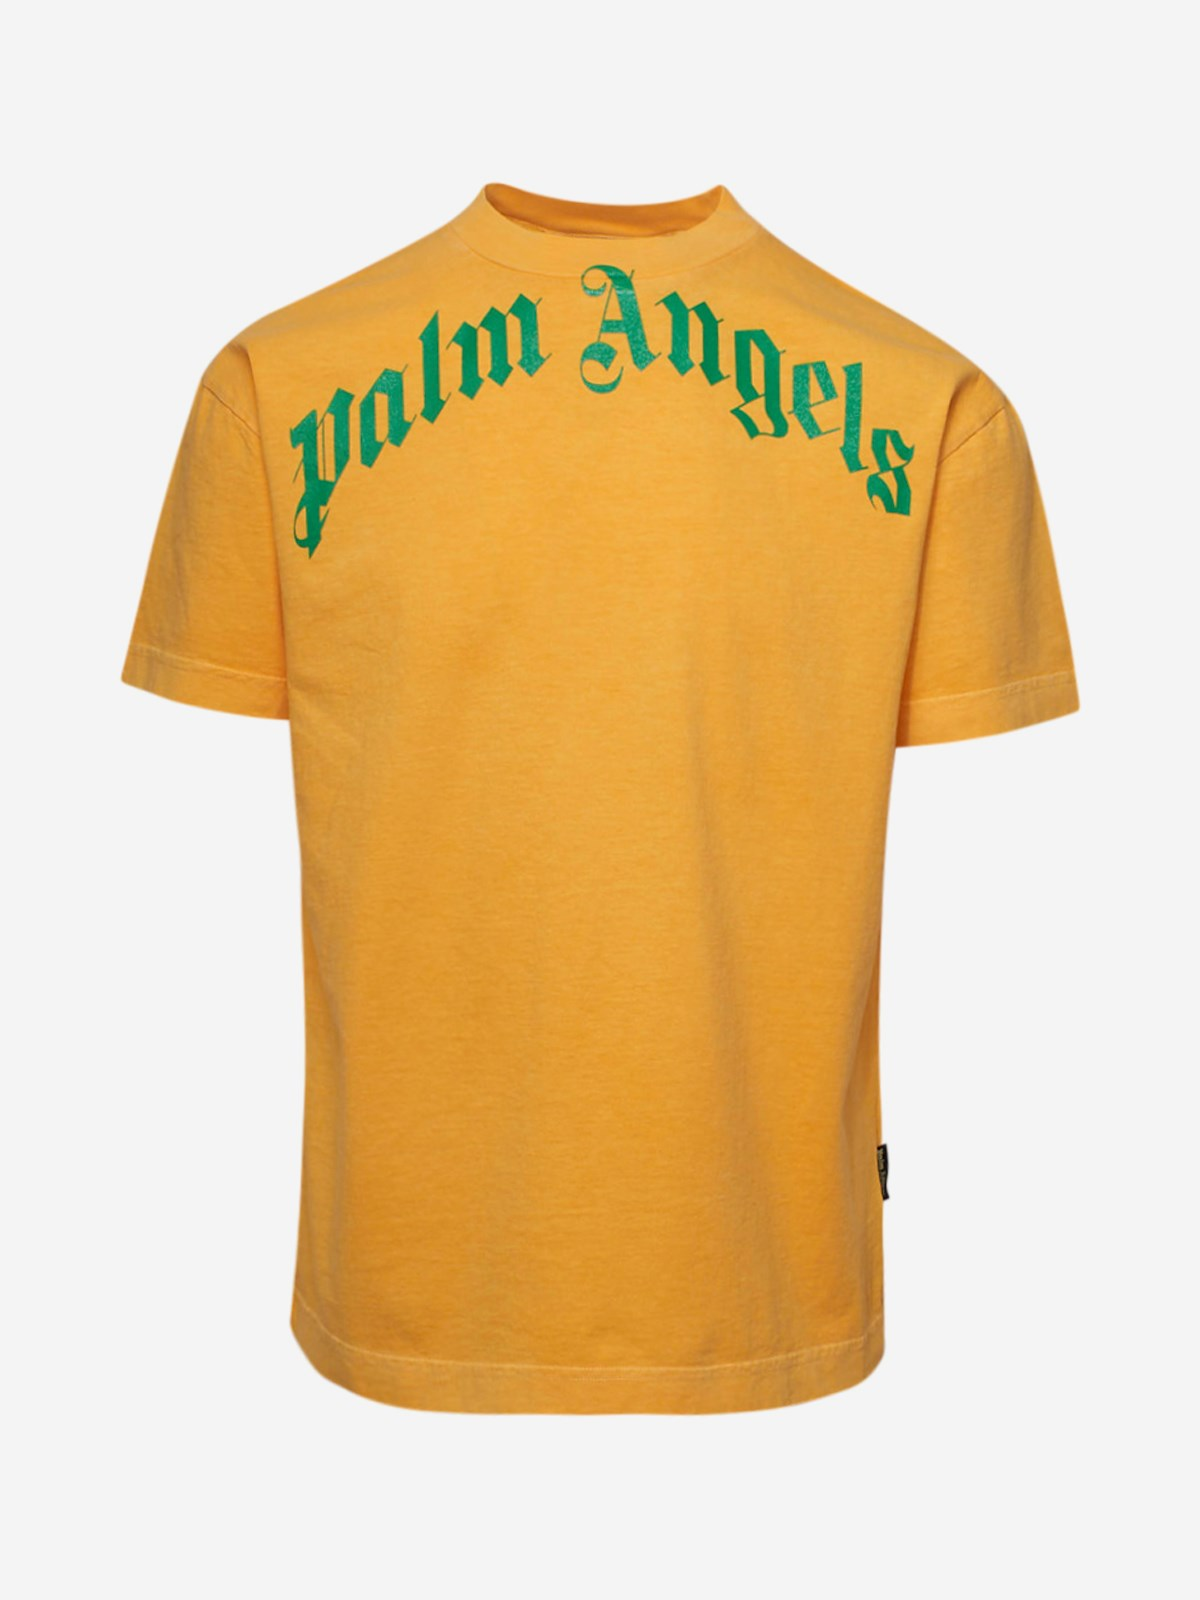 PALM ANGELS T-SHIRT VINTAGE WASH CURVED GIALLA